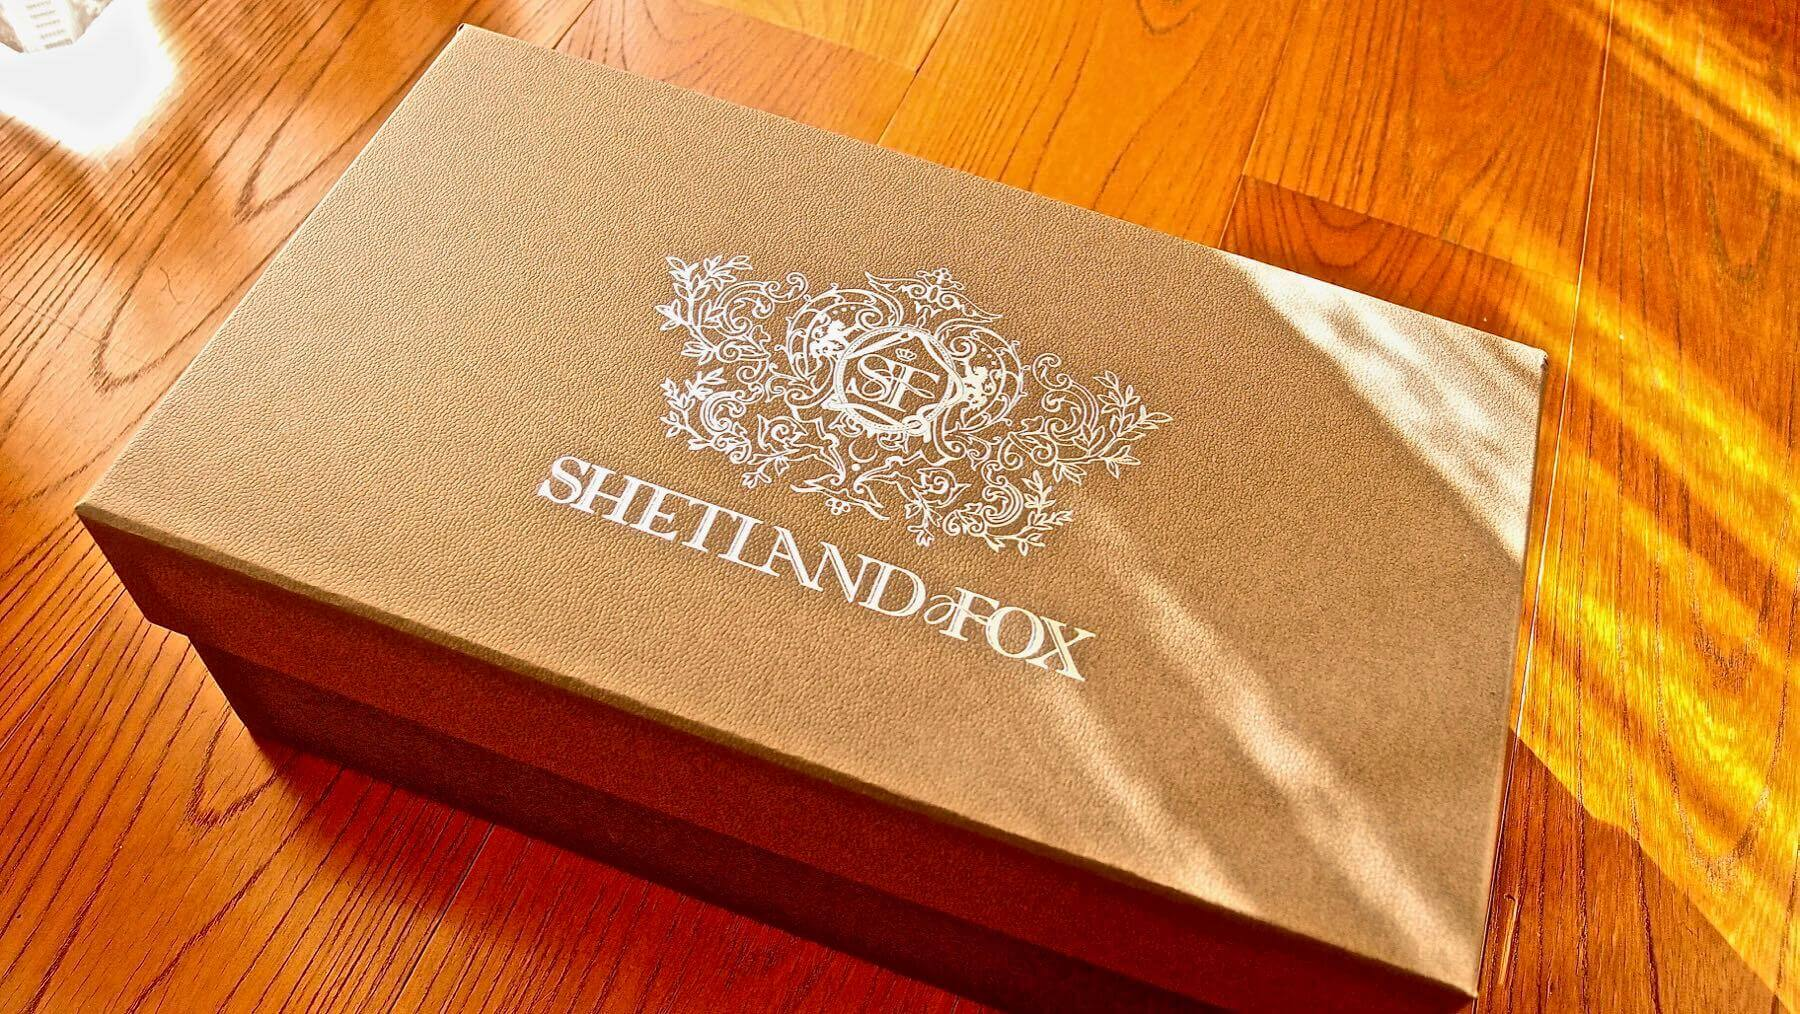 03 Shetlandfox Glasgow Outer case